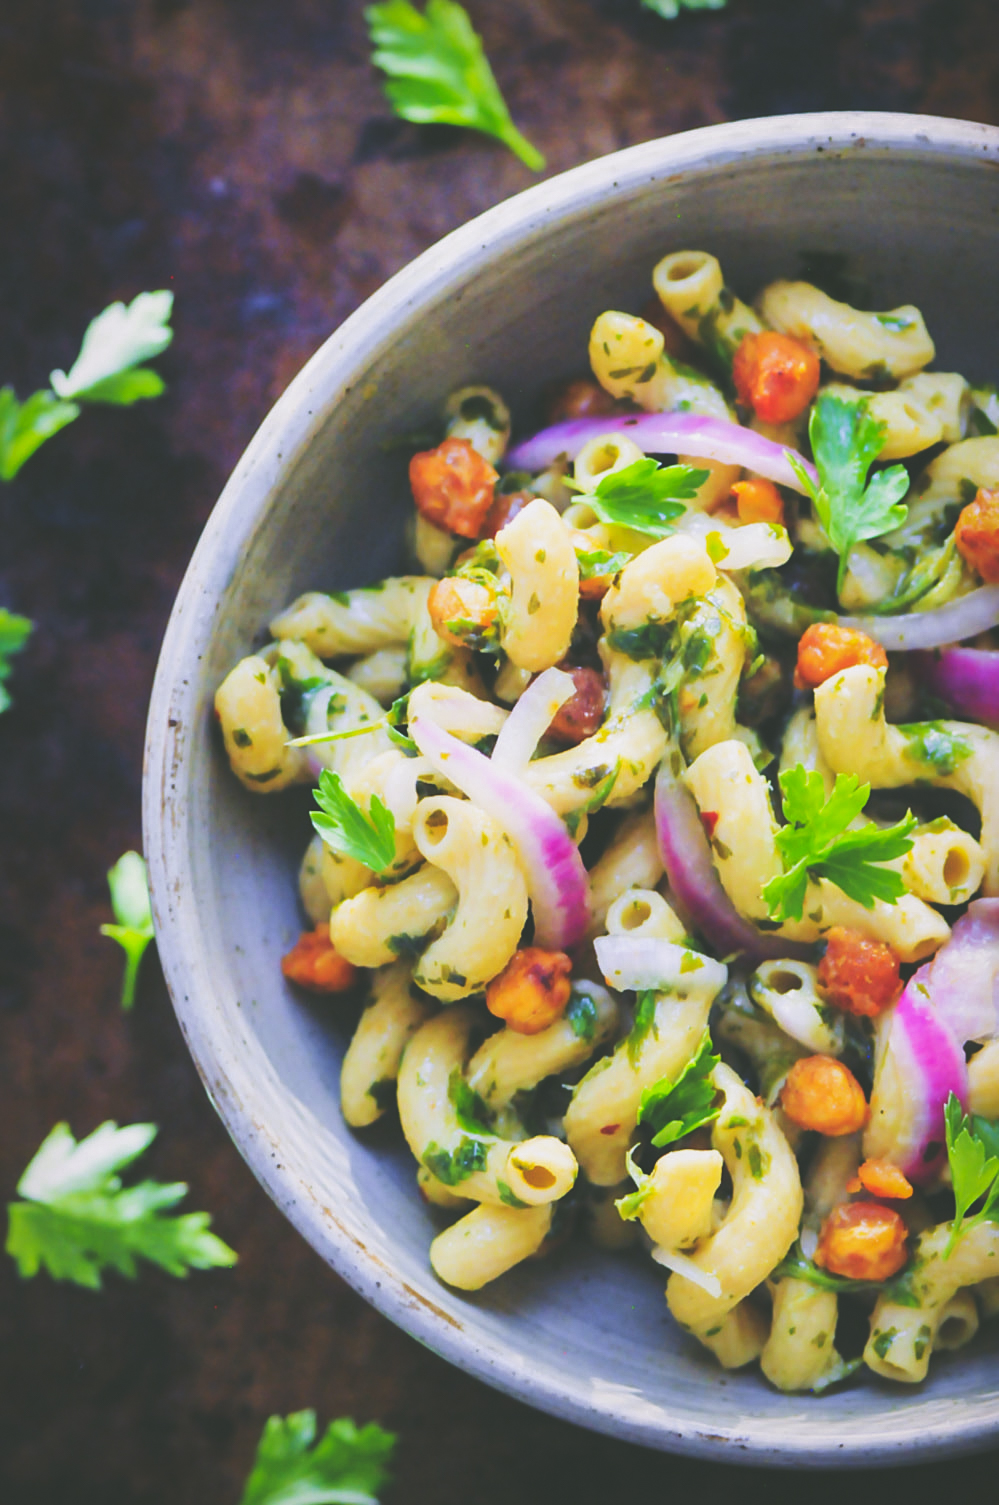 This Spicy Chimichurri Chickpea Pasta Bowl is super flavorful, healthy, easy to make, gluten- free, vegan, and packed with protein and fiber! #chimichurripasta #spicypastasalad #glutenfreepasta #veganpastasalad #chickpeapasta